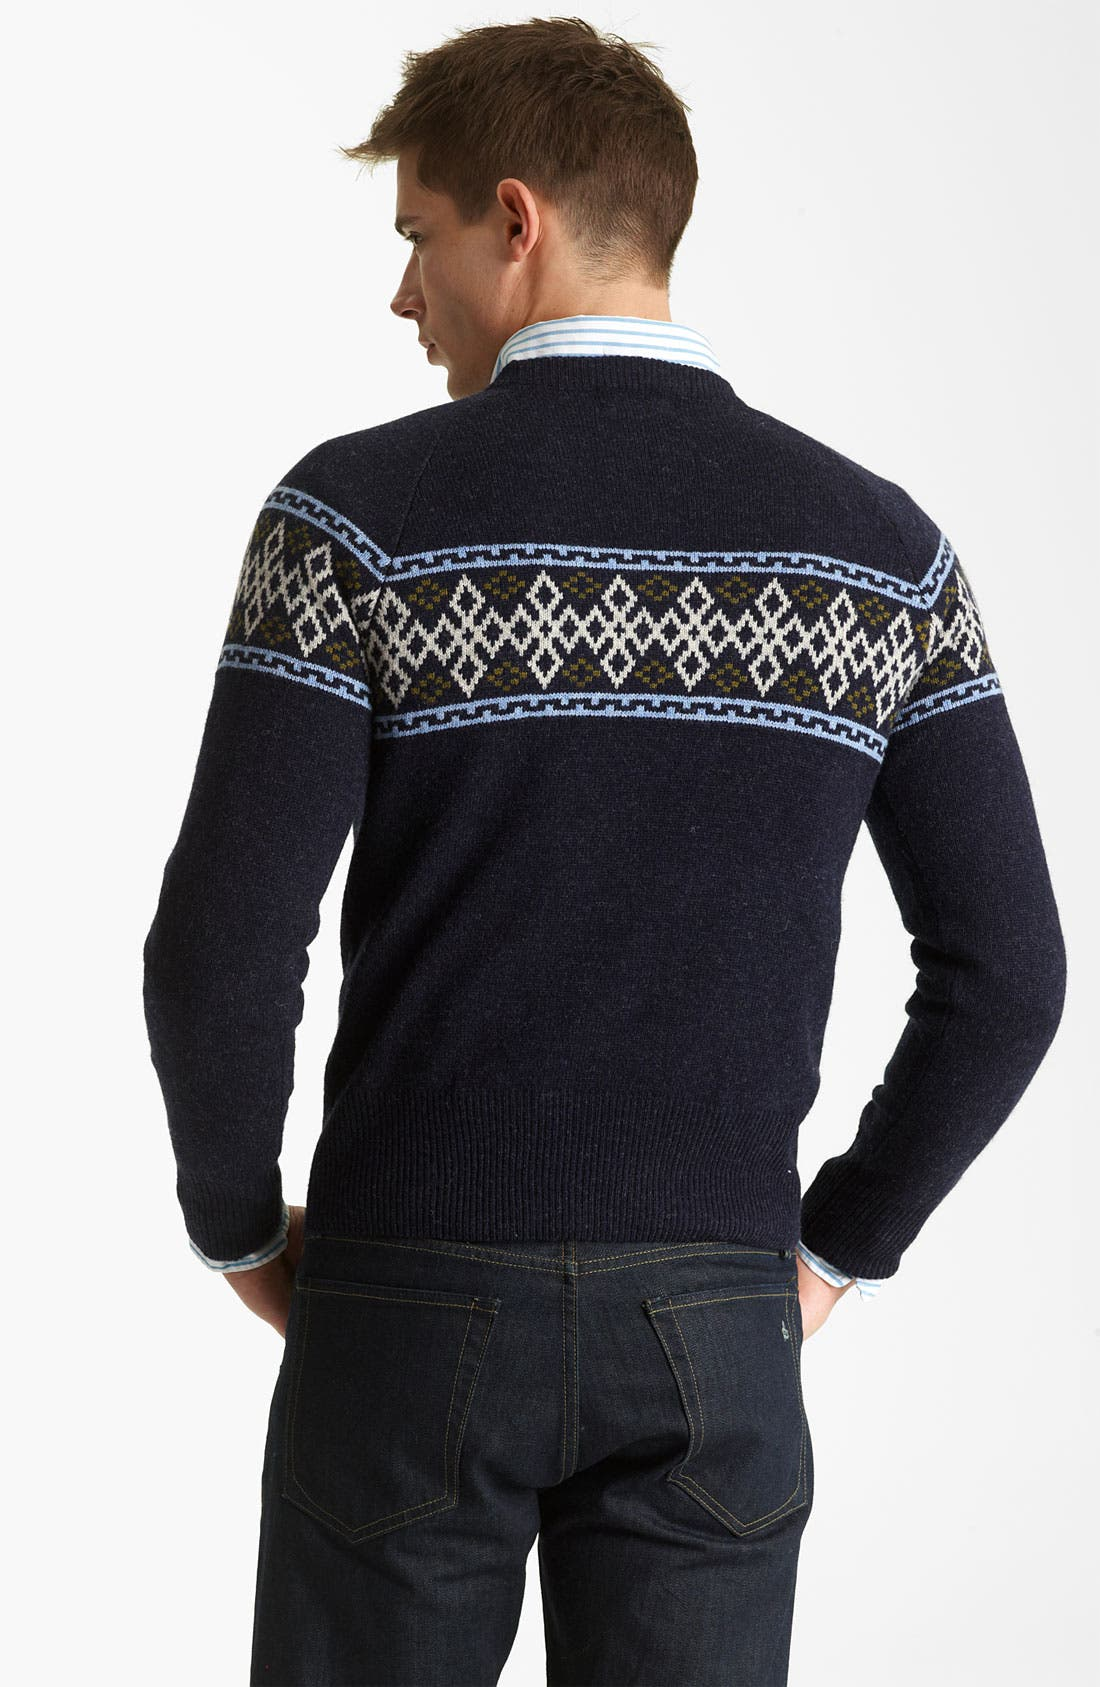 GANT BY MICHAEL BASTIAN, Wool Crewneck Sweater, Alternate thumbnail 2, color, 410